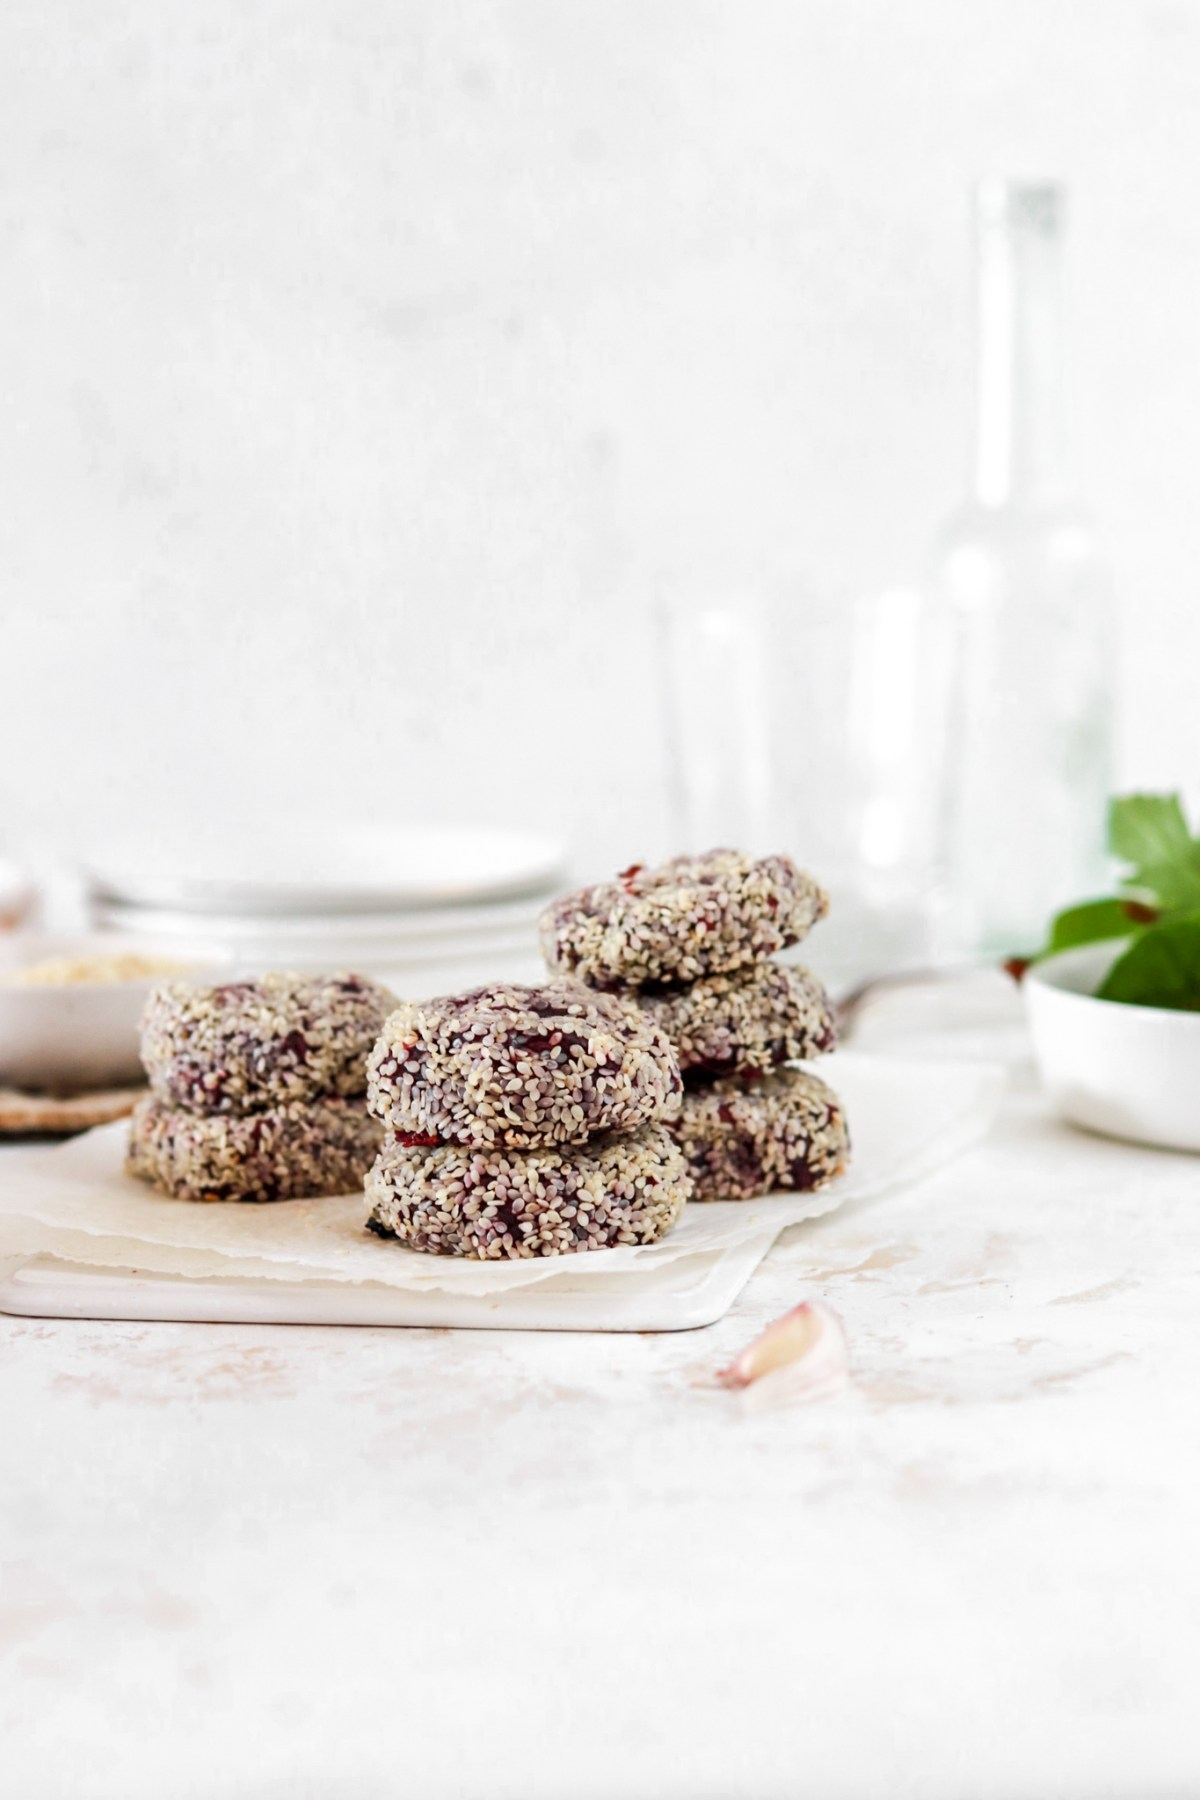 PurpleSweet Potato Patties (Vegan Friendly, Gluten, Dairy, Grain Free, Paleo) From Front